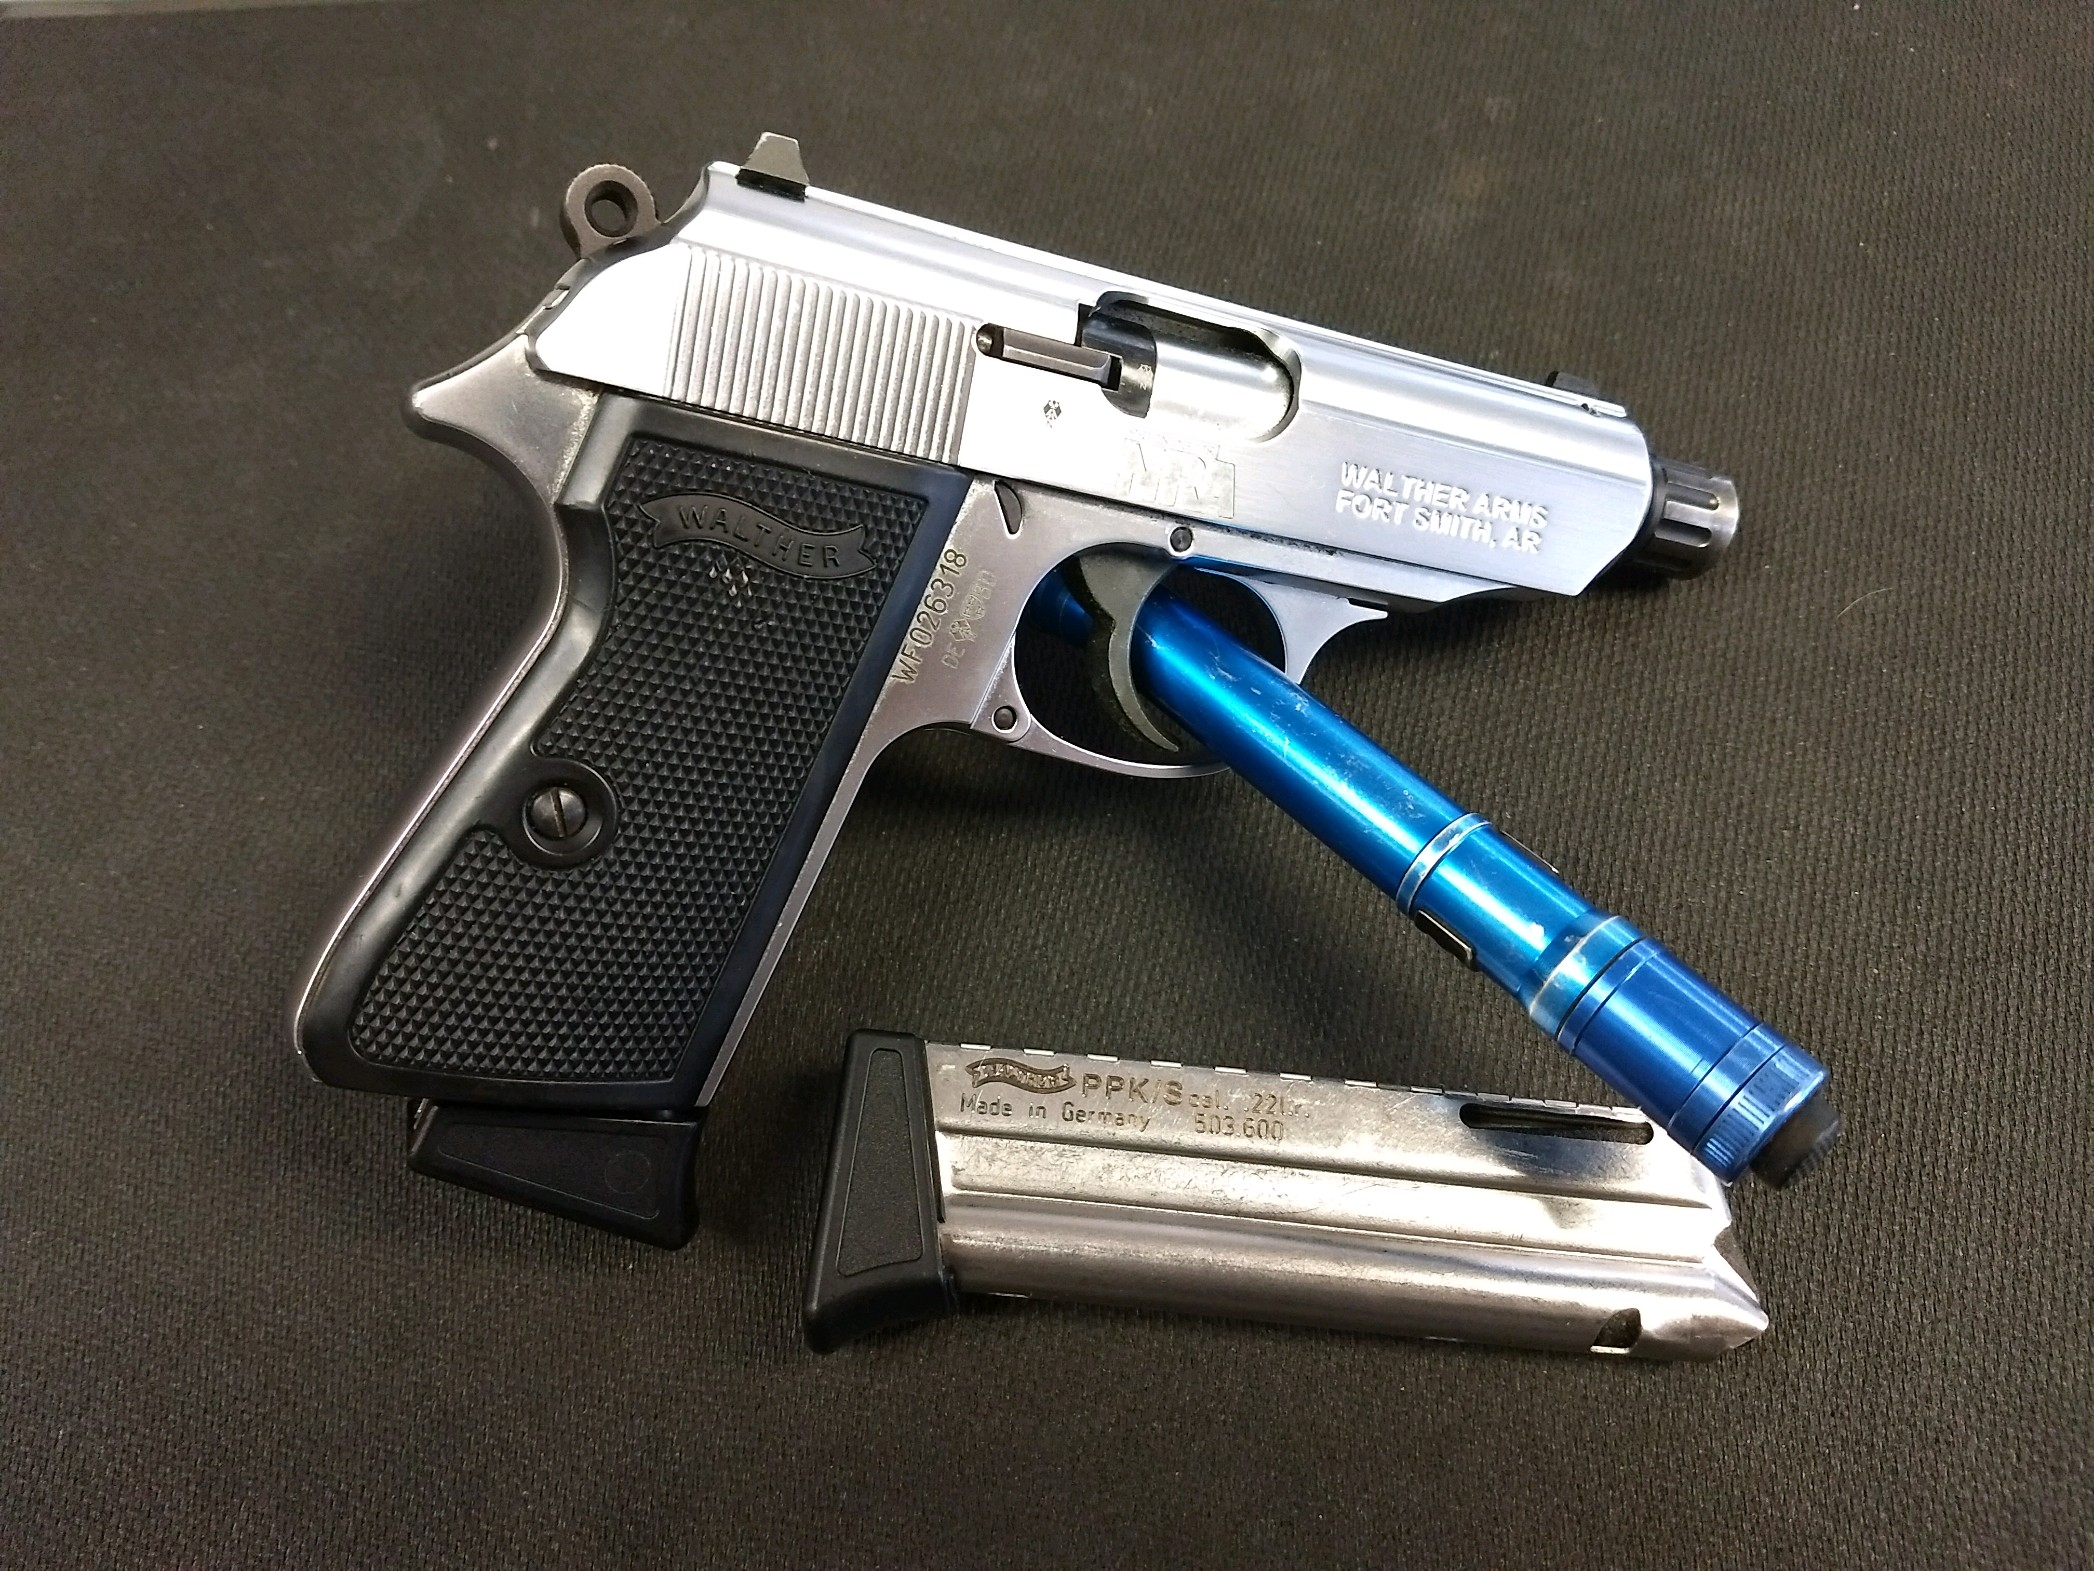 PPK/S 22LR Stainless threaded Barrel w/2mags Made in Germany